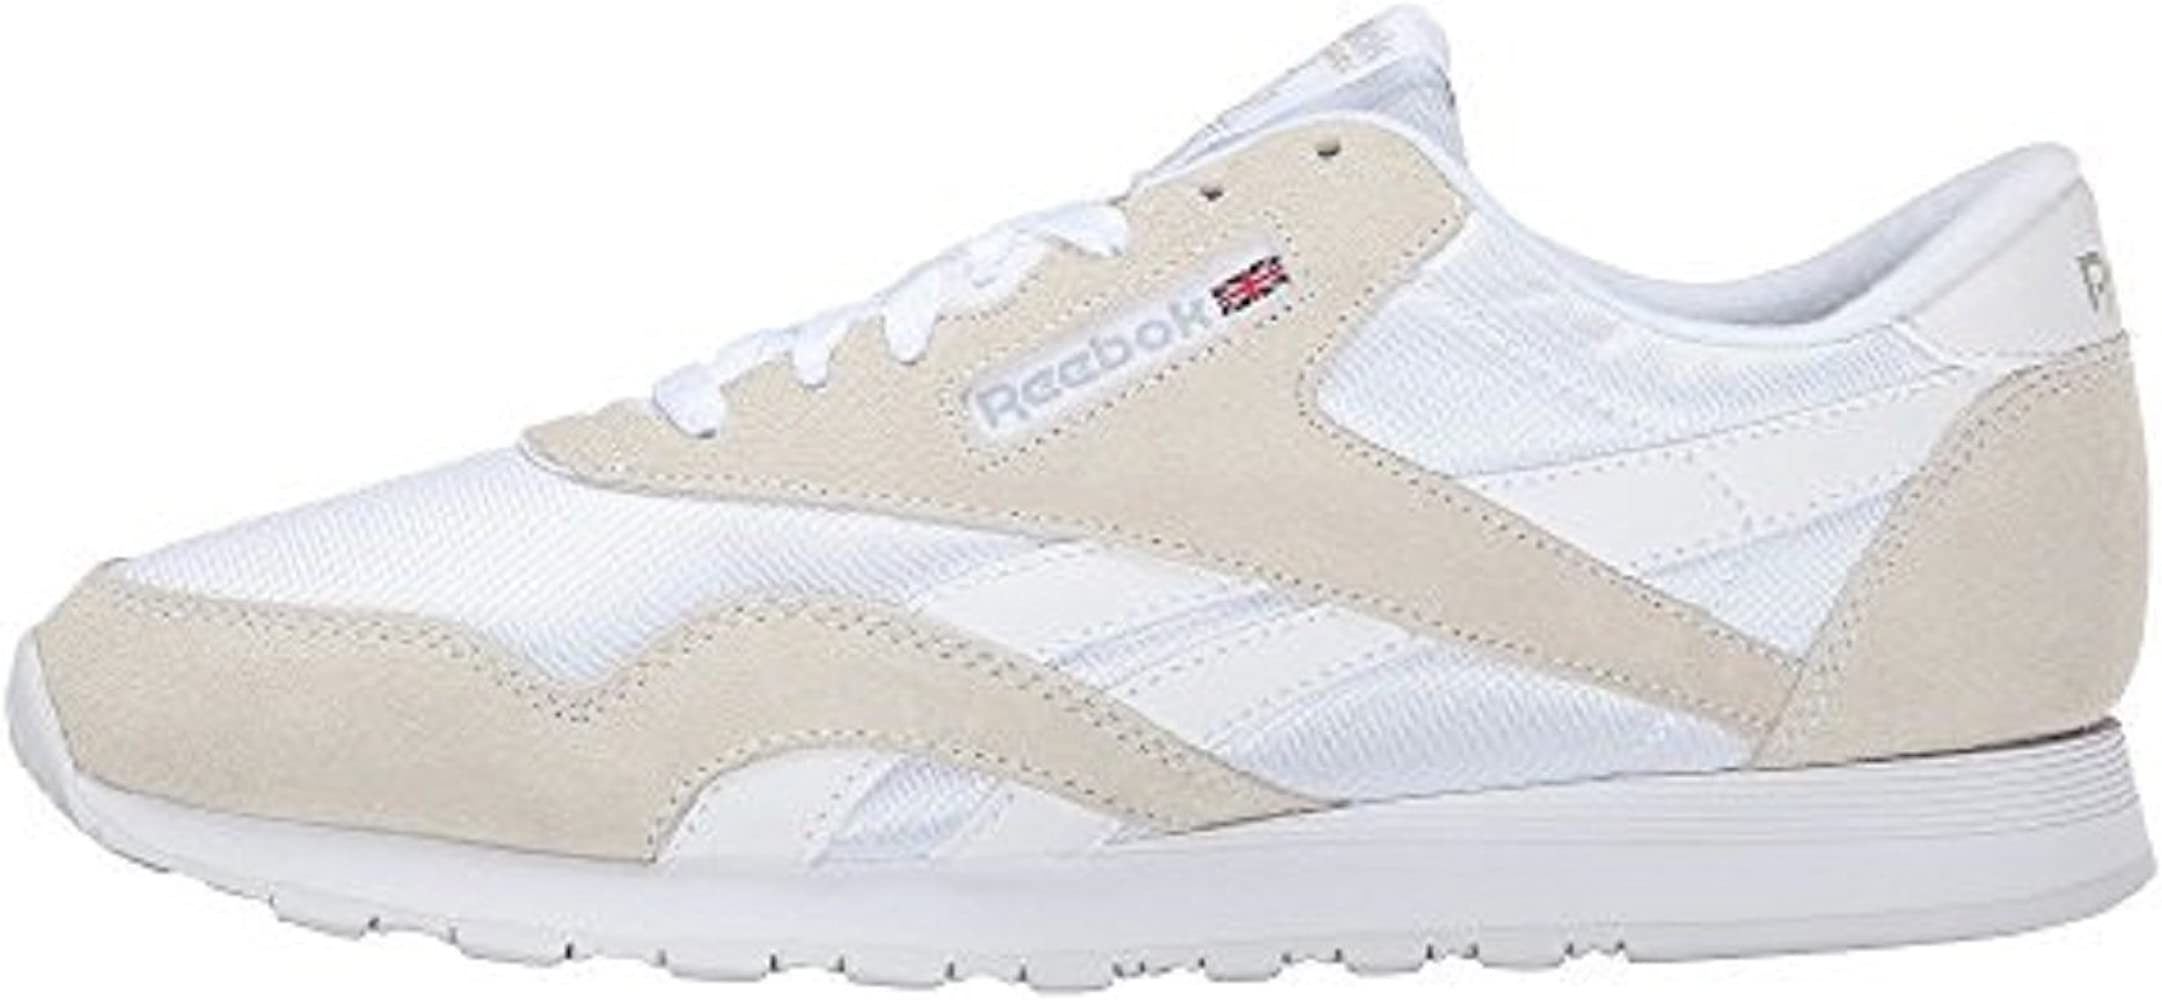 Cíclope Glorioso Apto  Amazon.com: Reebok Men's Classic Sneaker (45-46 M EU / 12 D(M) US, White/Light  Grey): Shoes